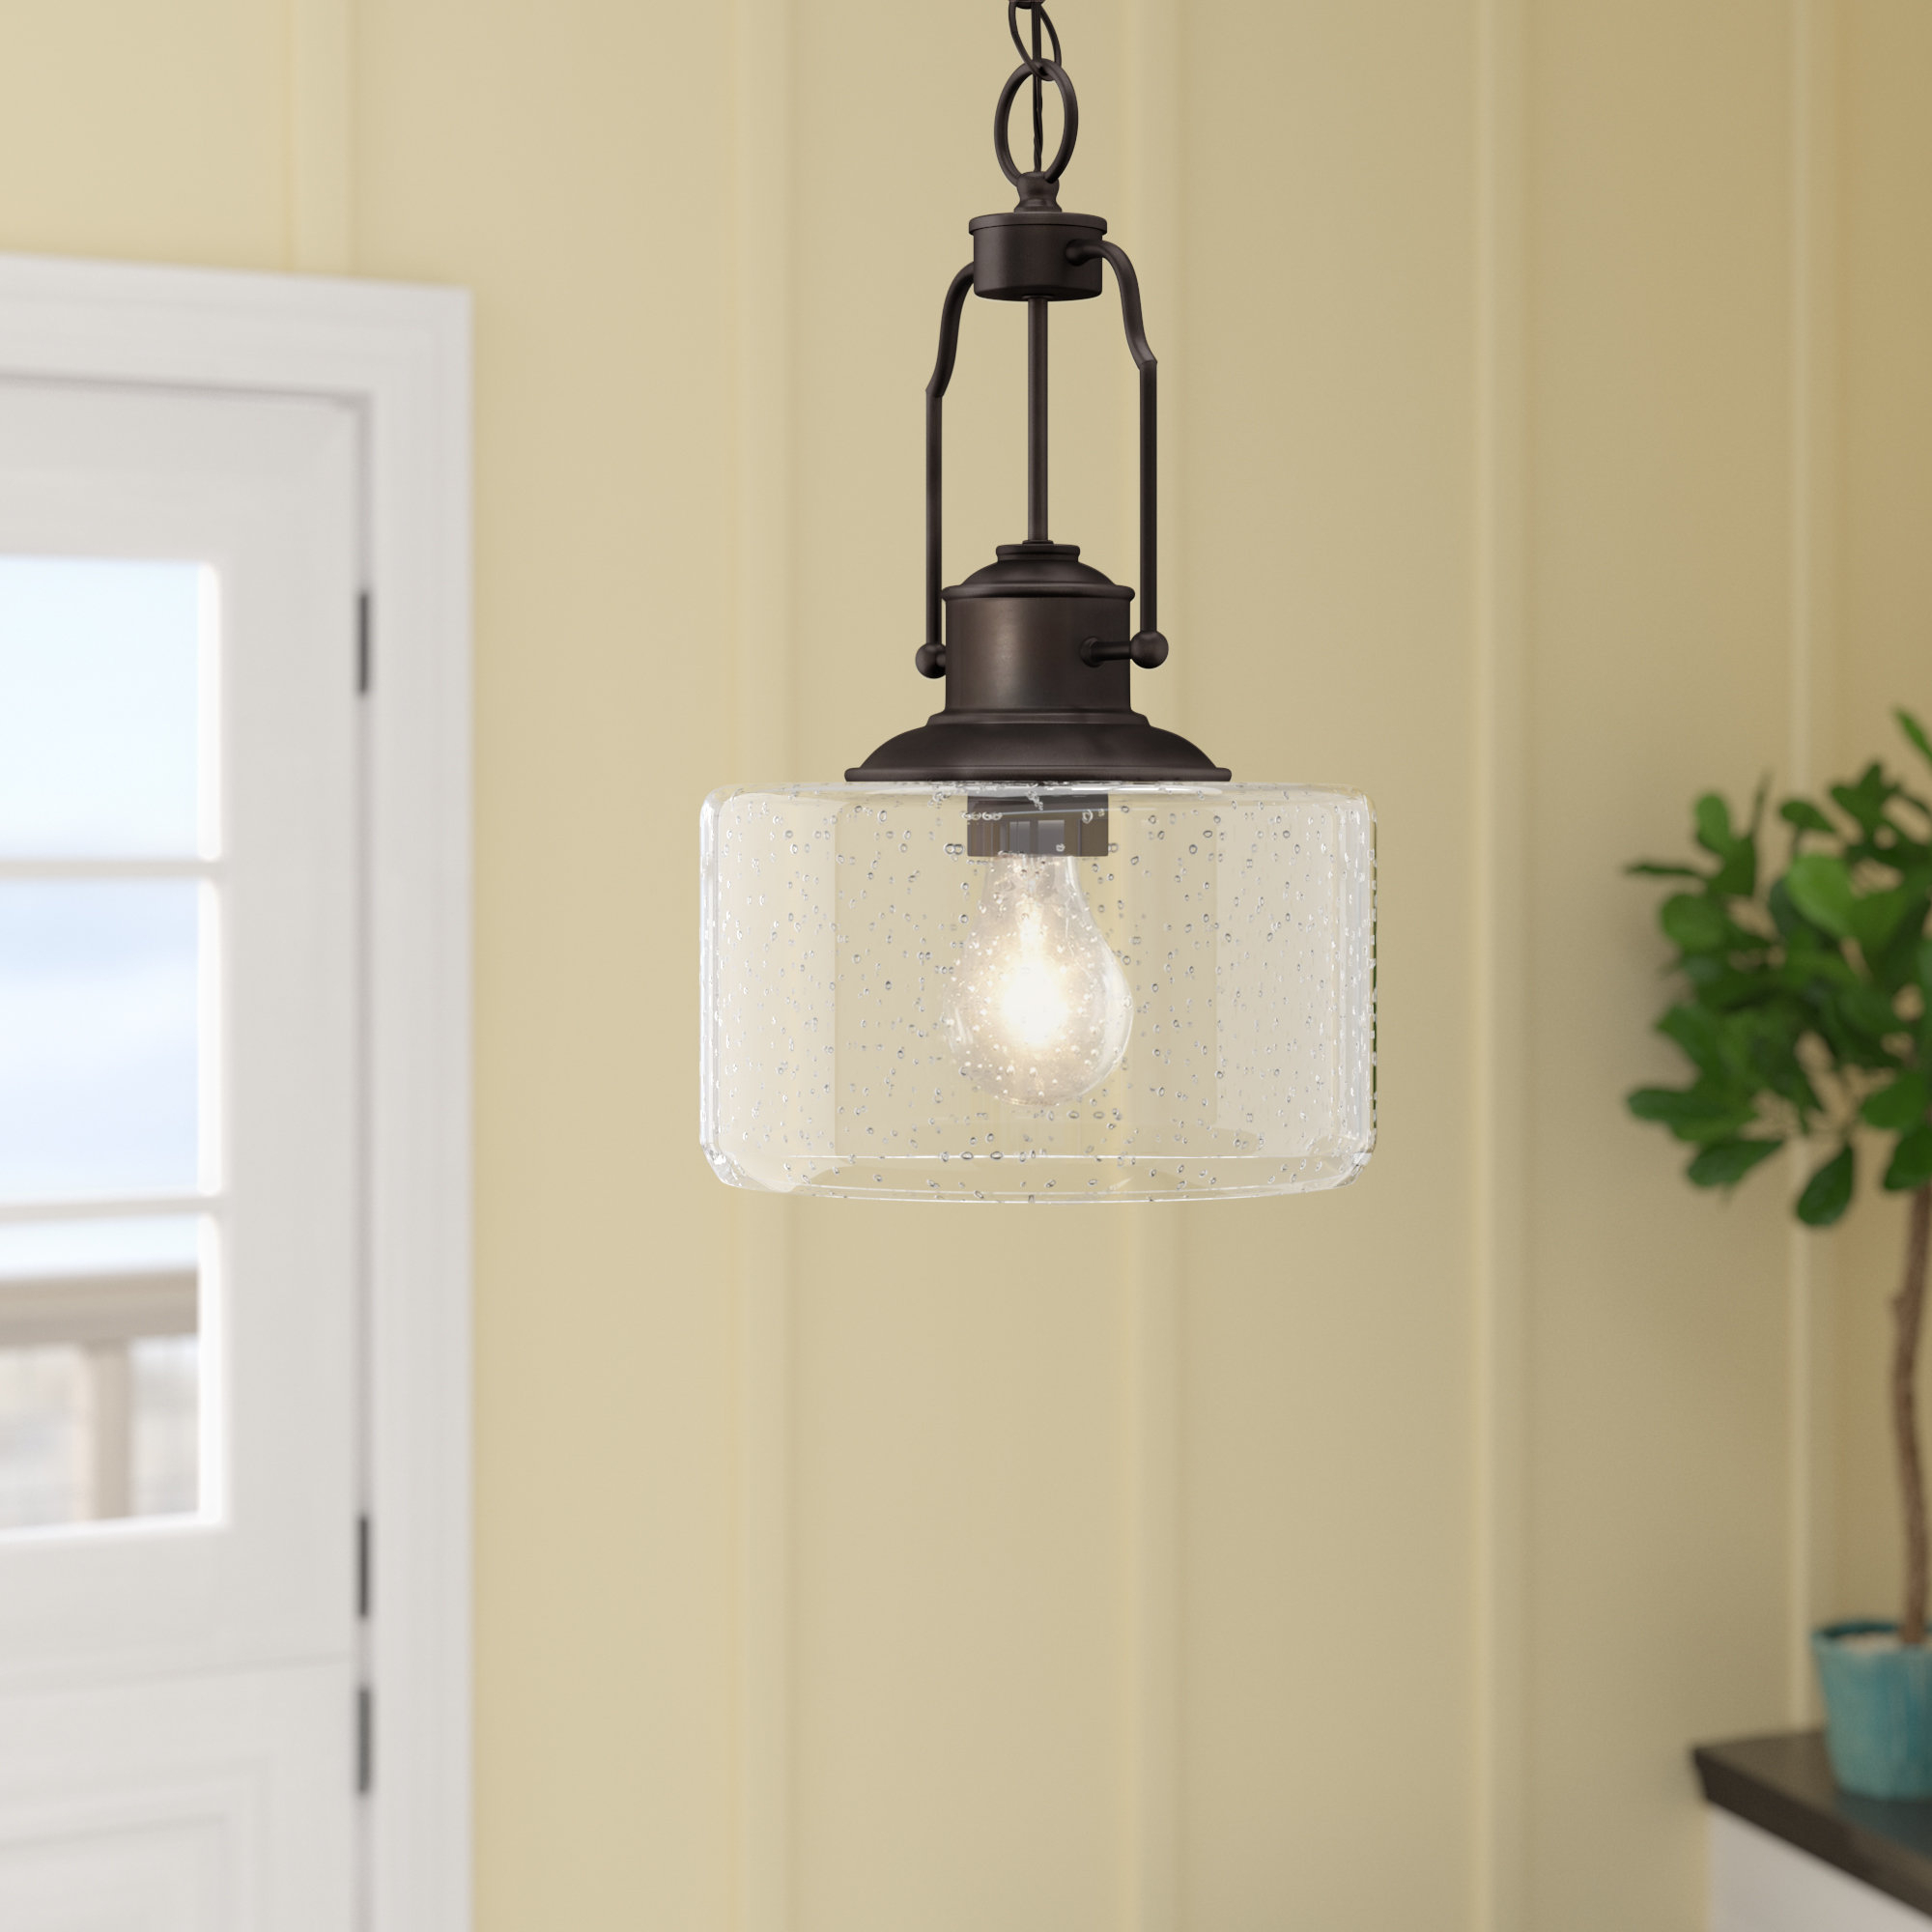 1 Light Drum Pendant With Regard To Moyer 1 Light Single Cylinder Pendants (View 1 of 30)